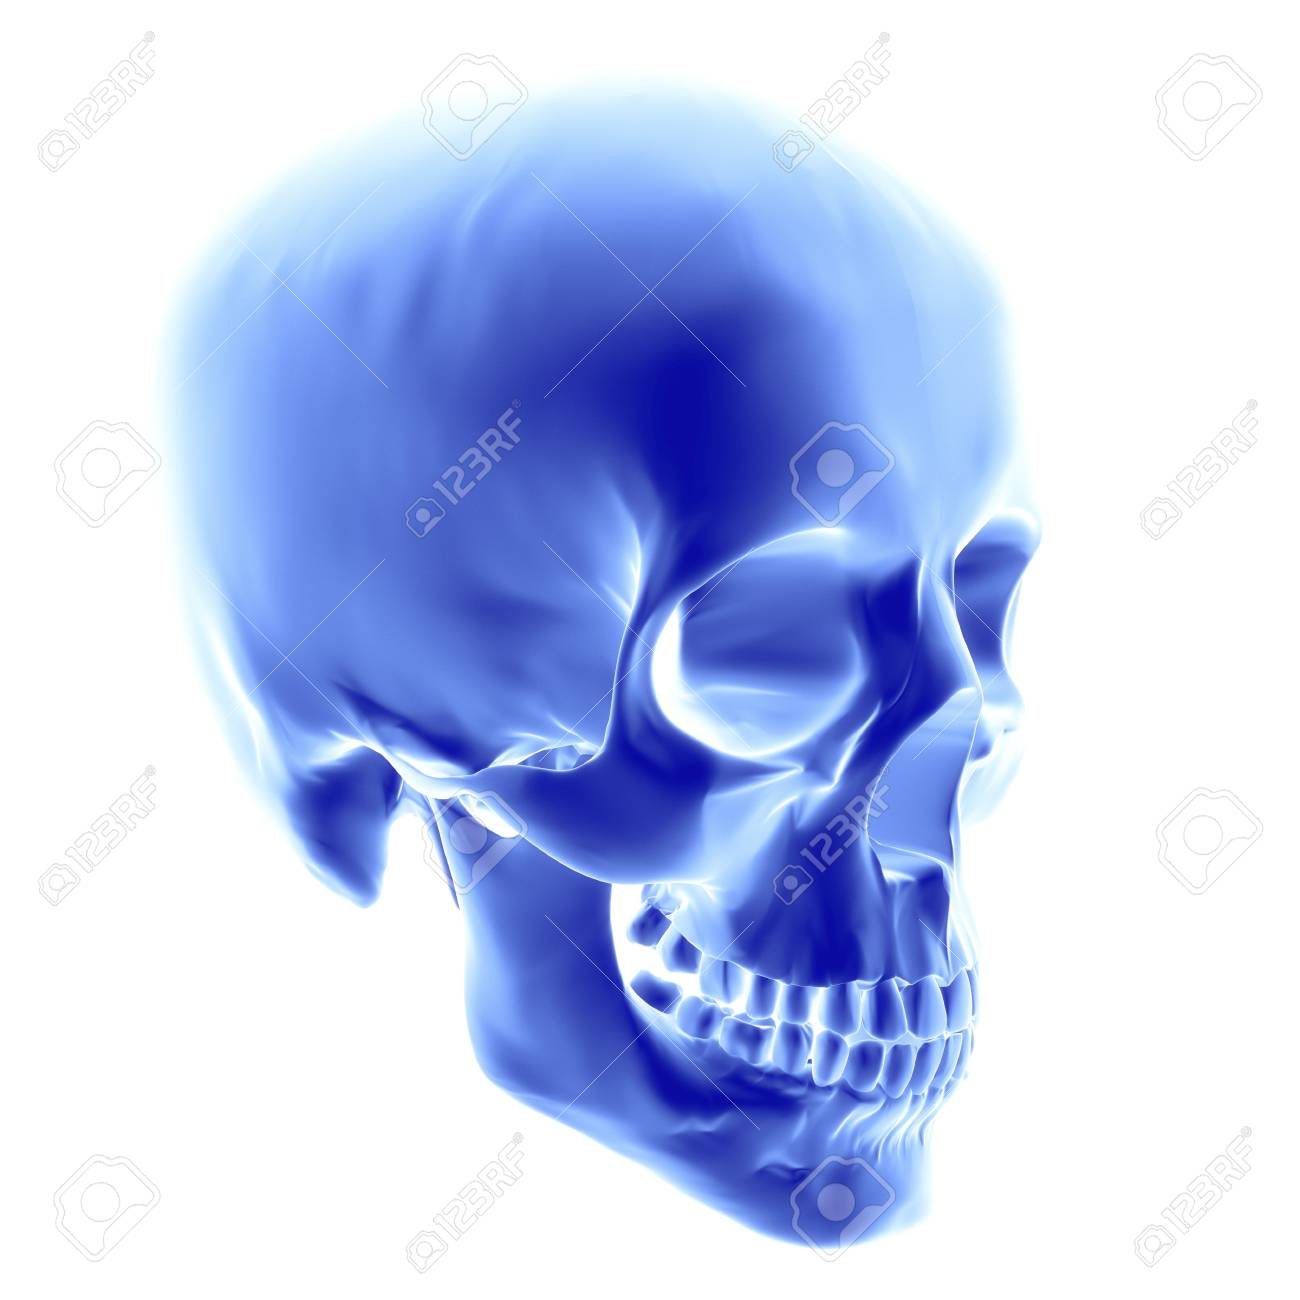 Skullputer Artwork Of An Opaque View Of A Human Skull Adult